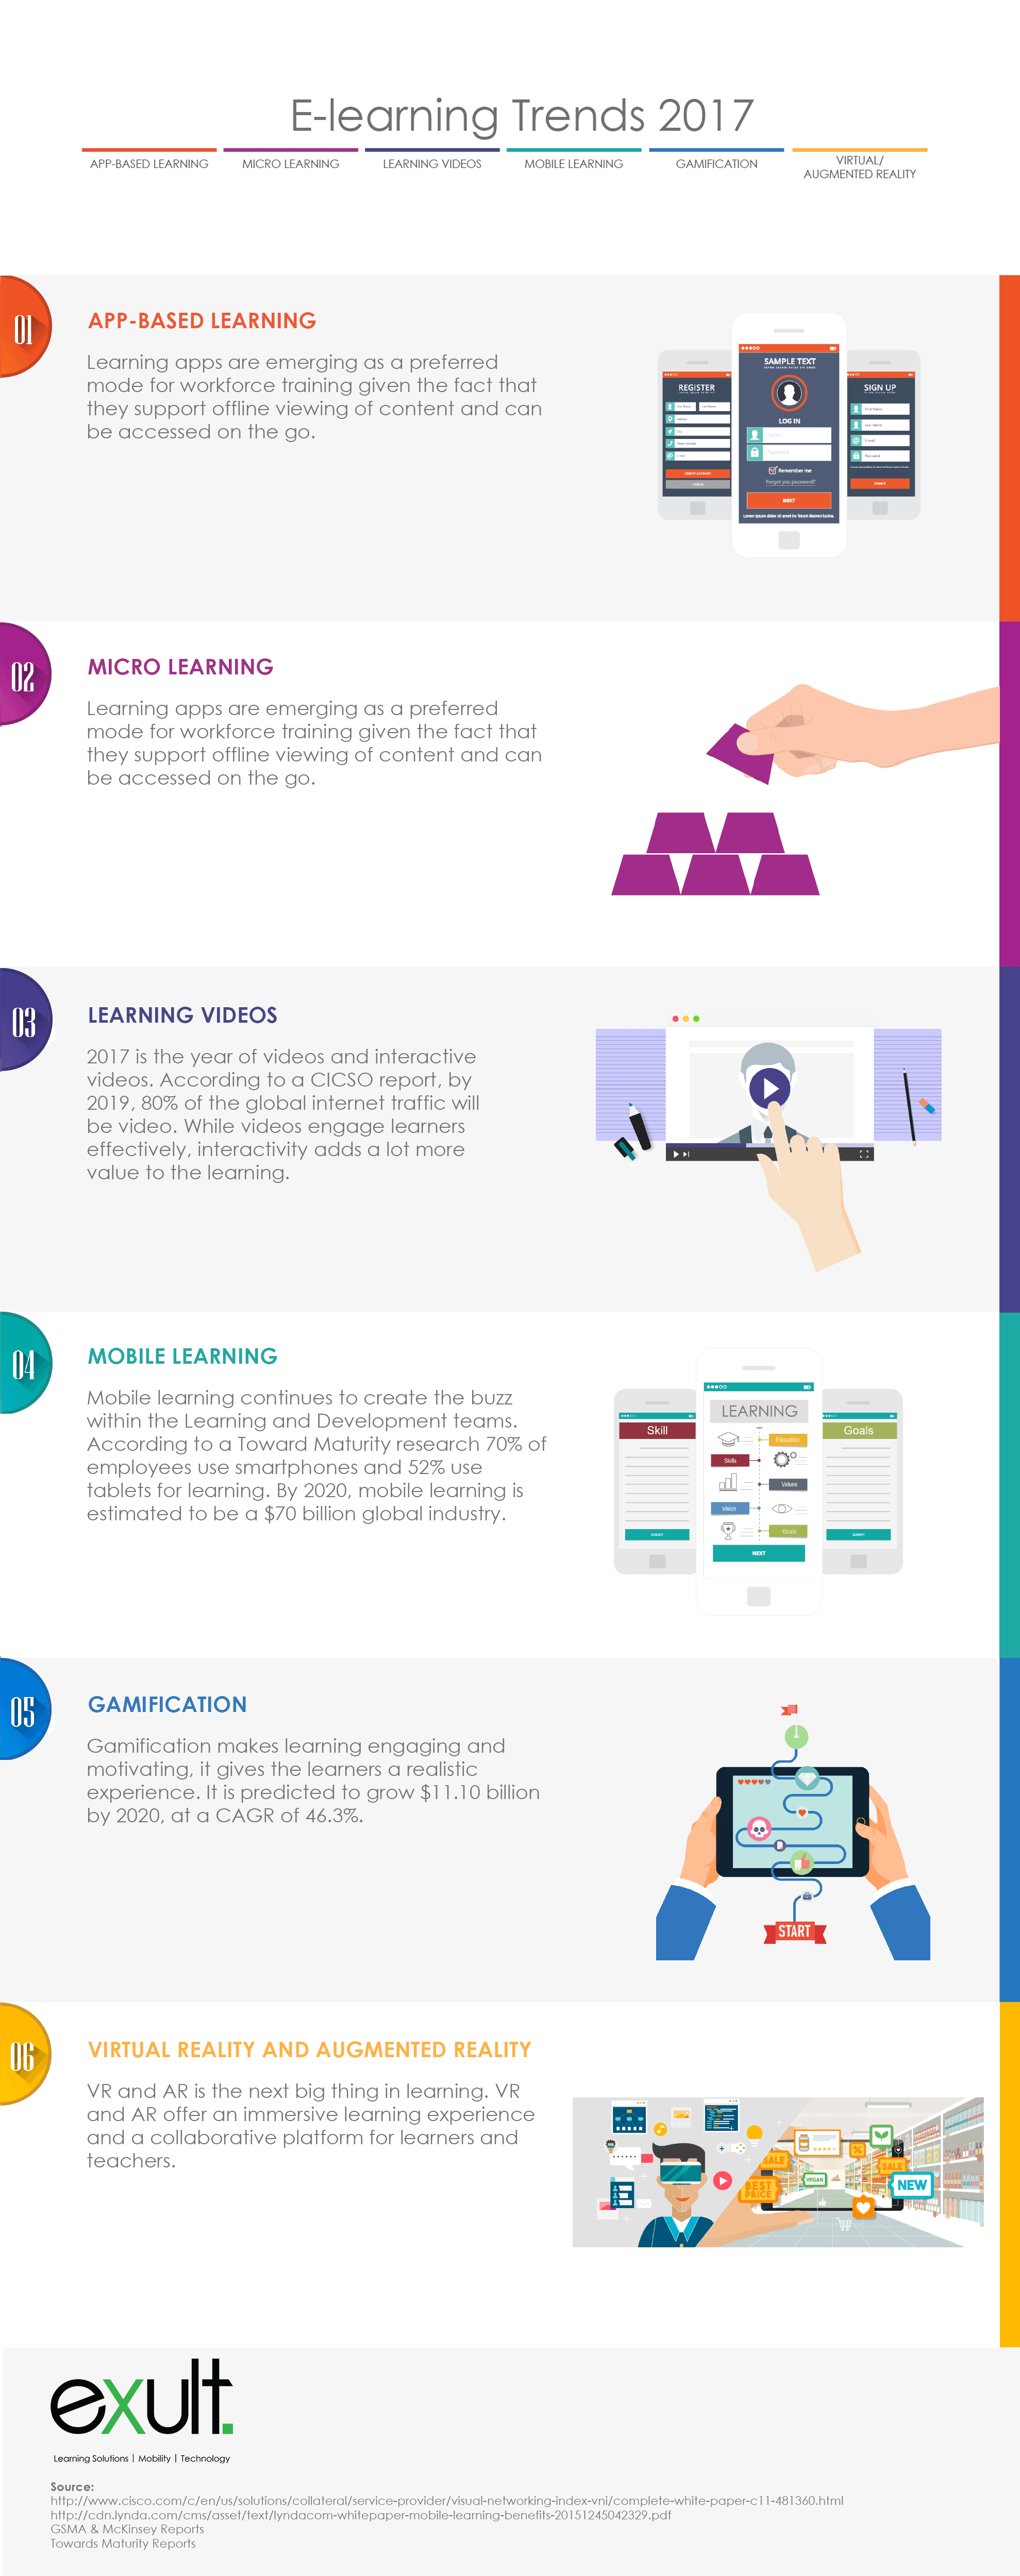 eLearning Trends 2017 Infographic